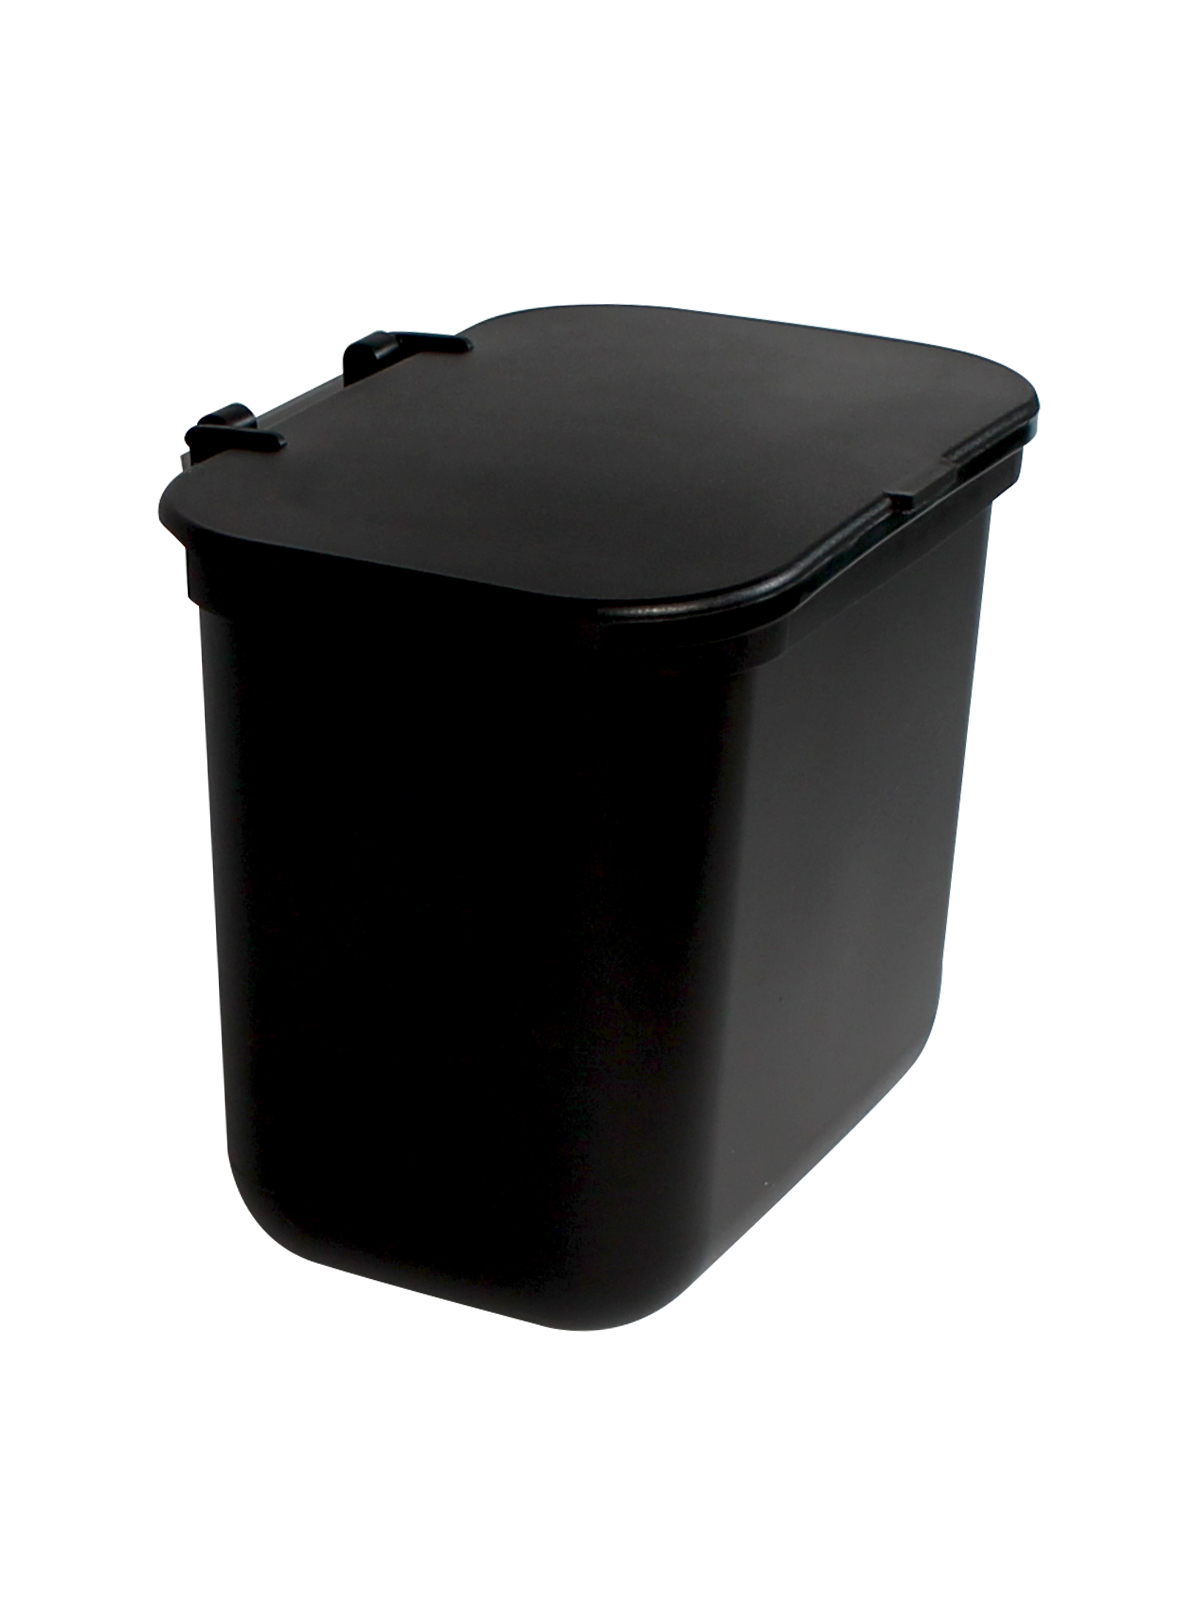 KIT HANGING WASTE BASKET W/ LID - BLK BLANK LID